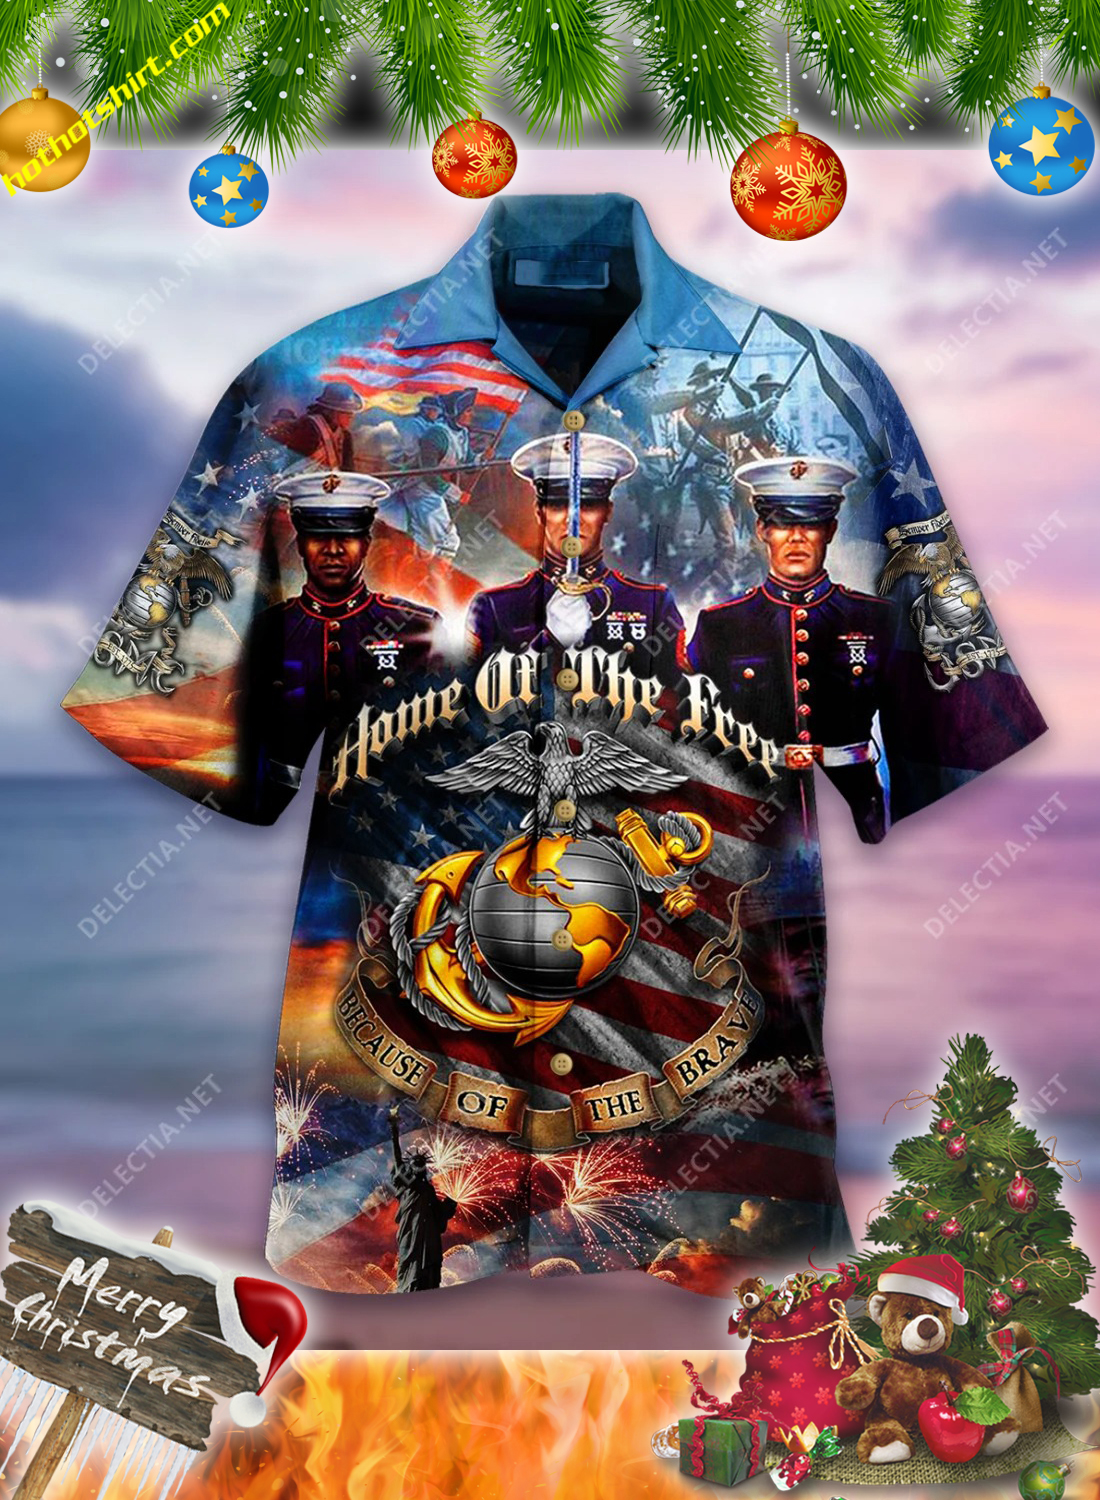 Home of the free because of the brave USMC hawaiian shirt 1